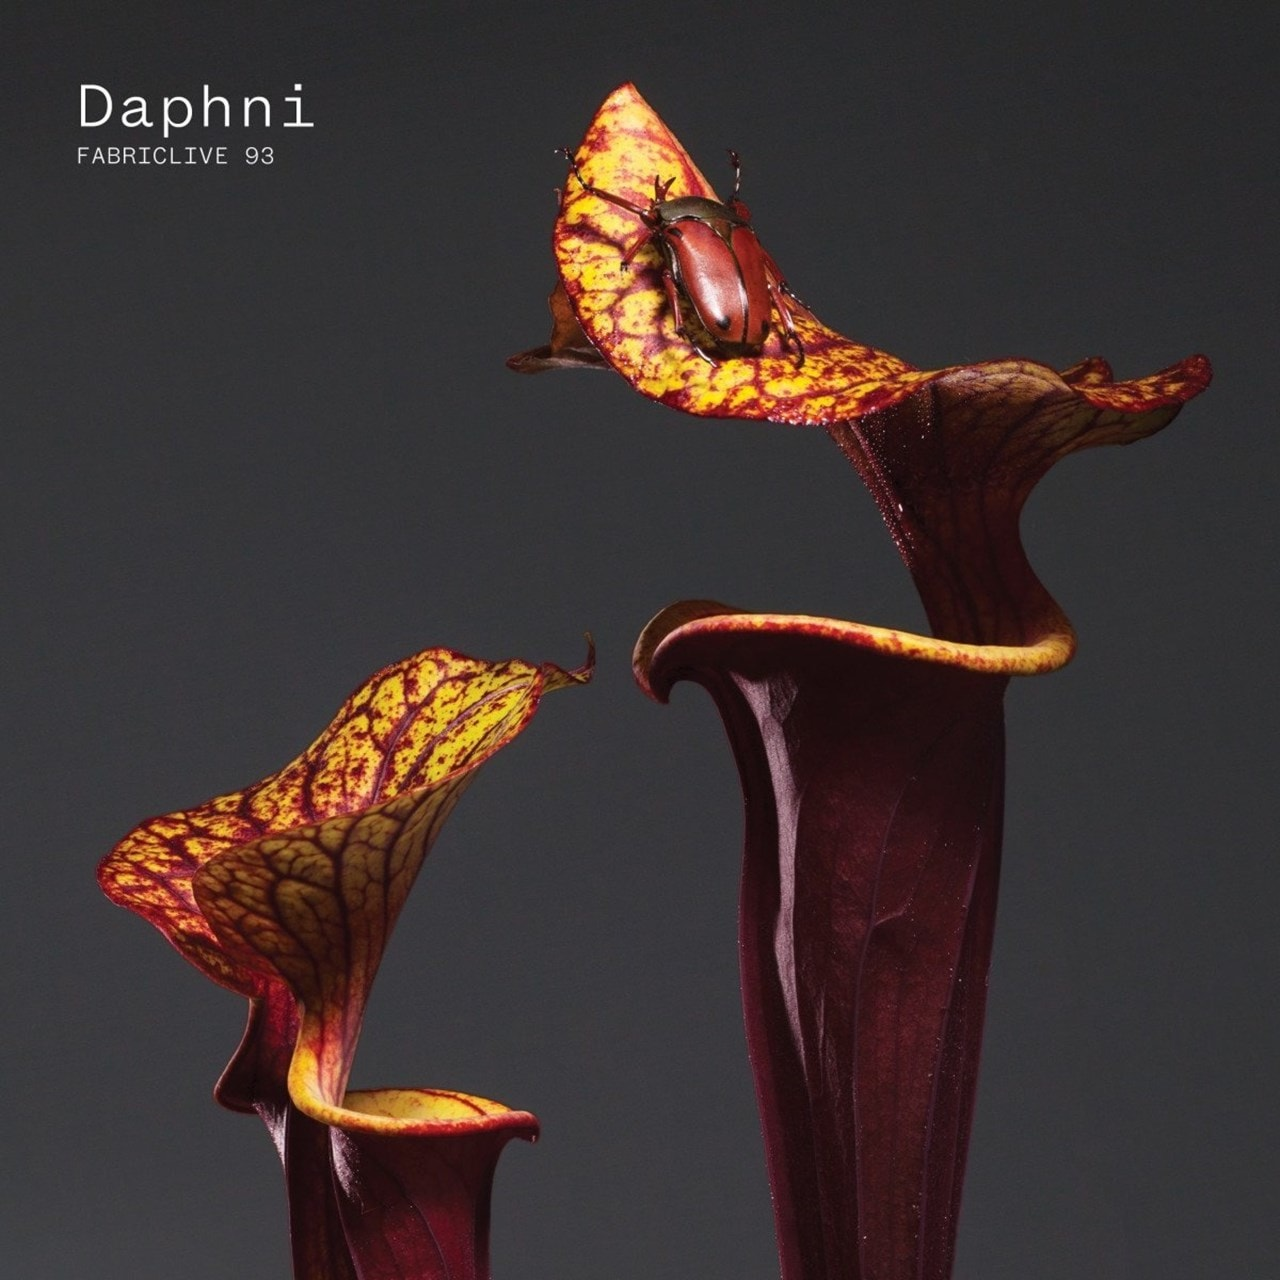 Fabriclive 93: Mixed By Daphni - 1